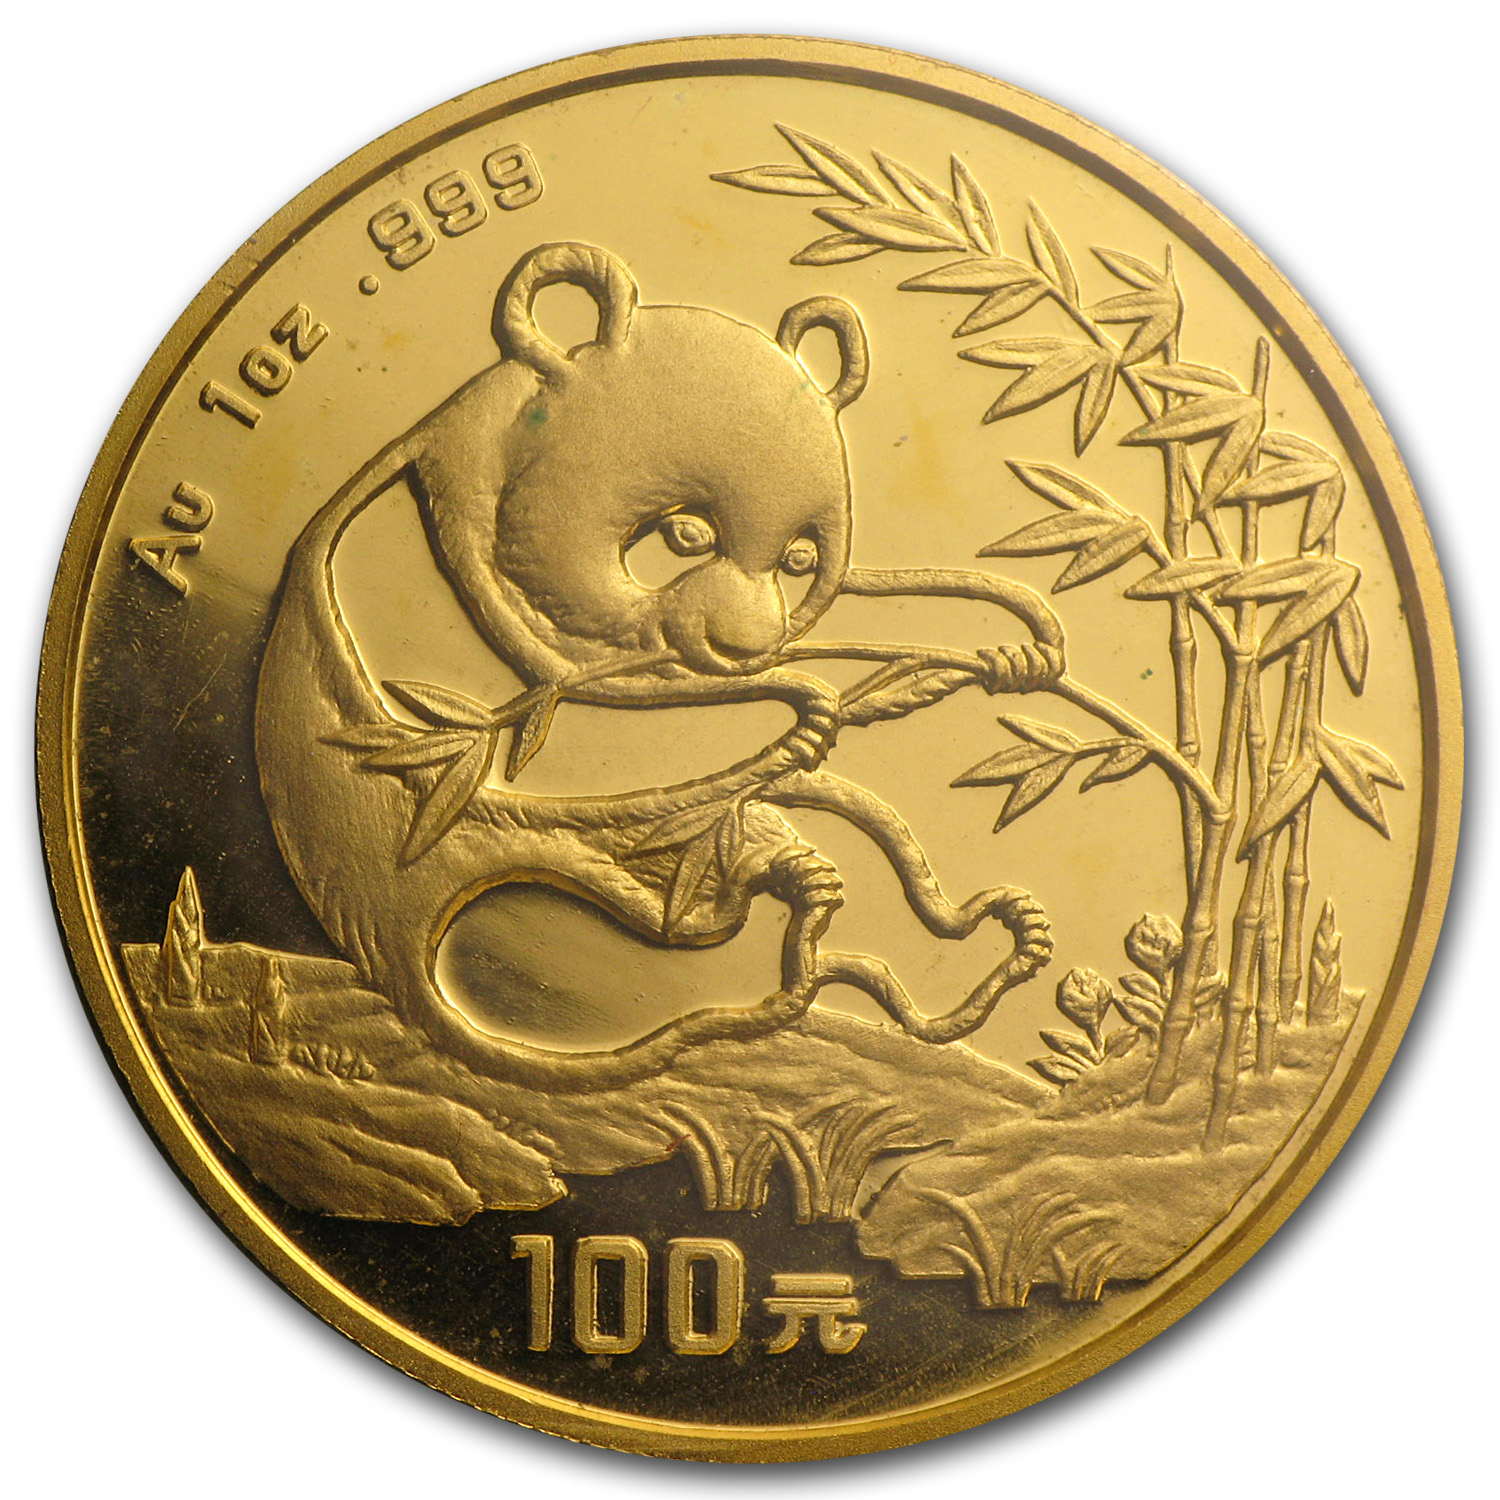 1994 China 1 oz Gold Panda Small Date BU (Sealed)